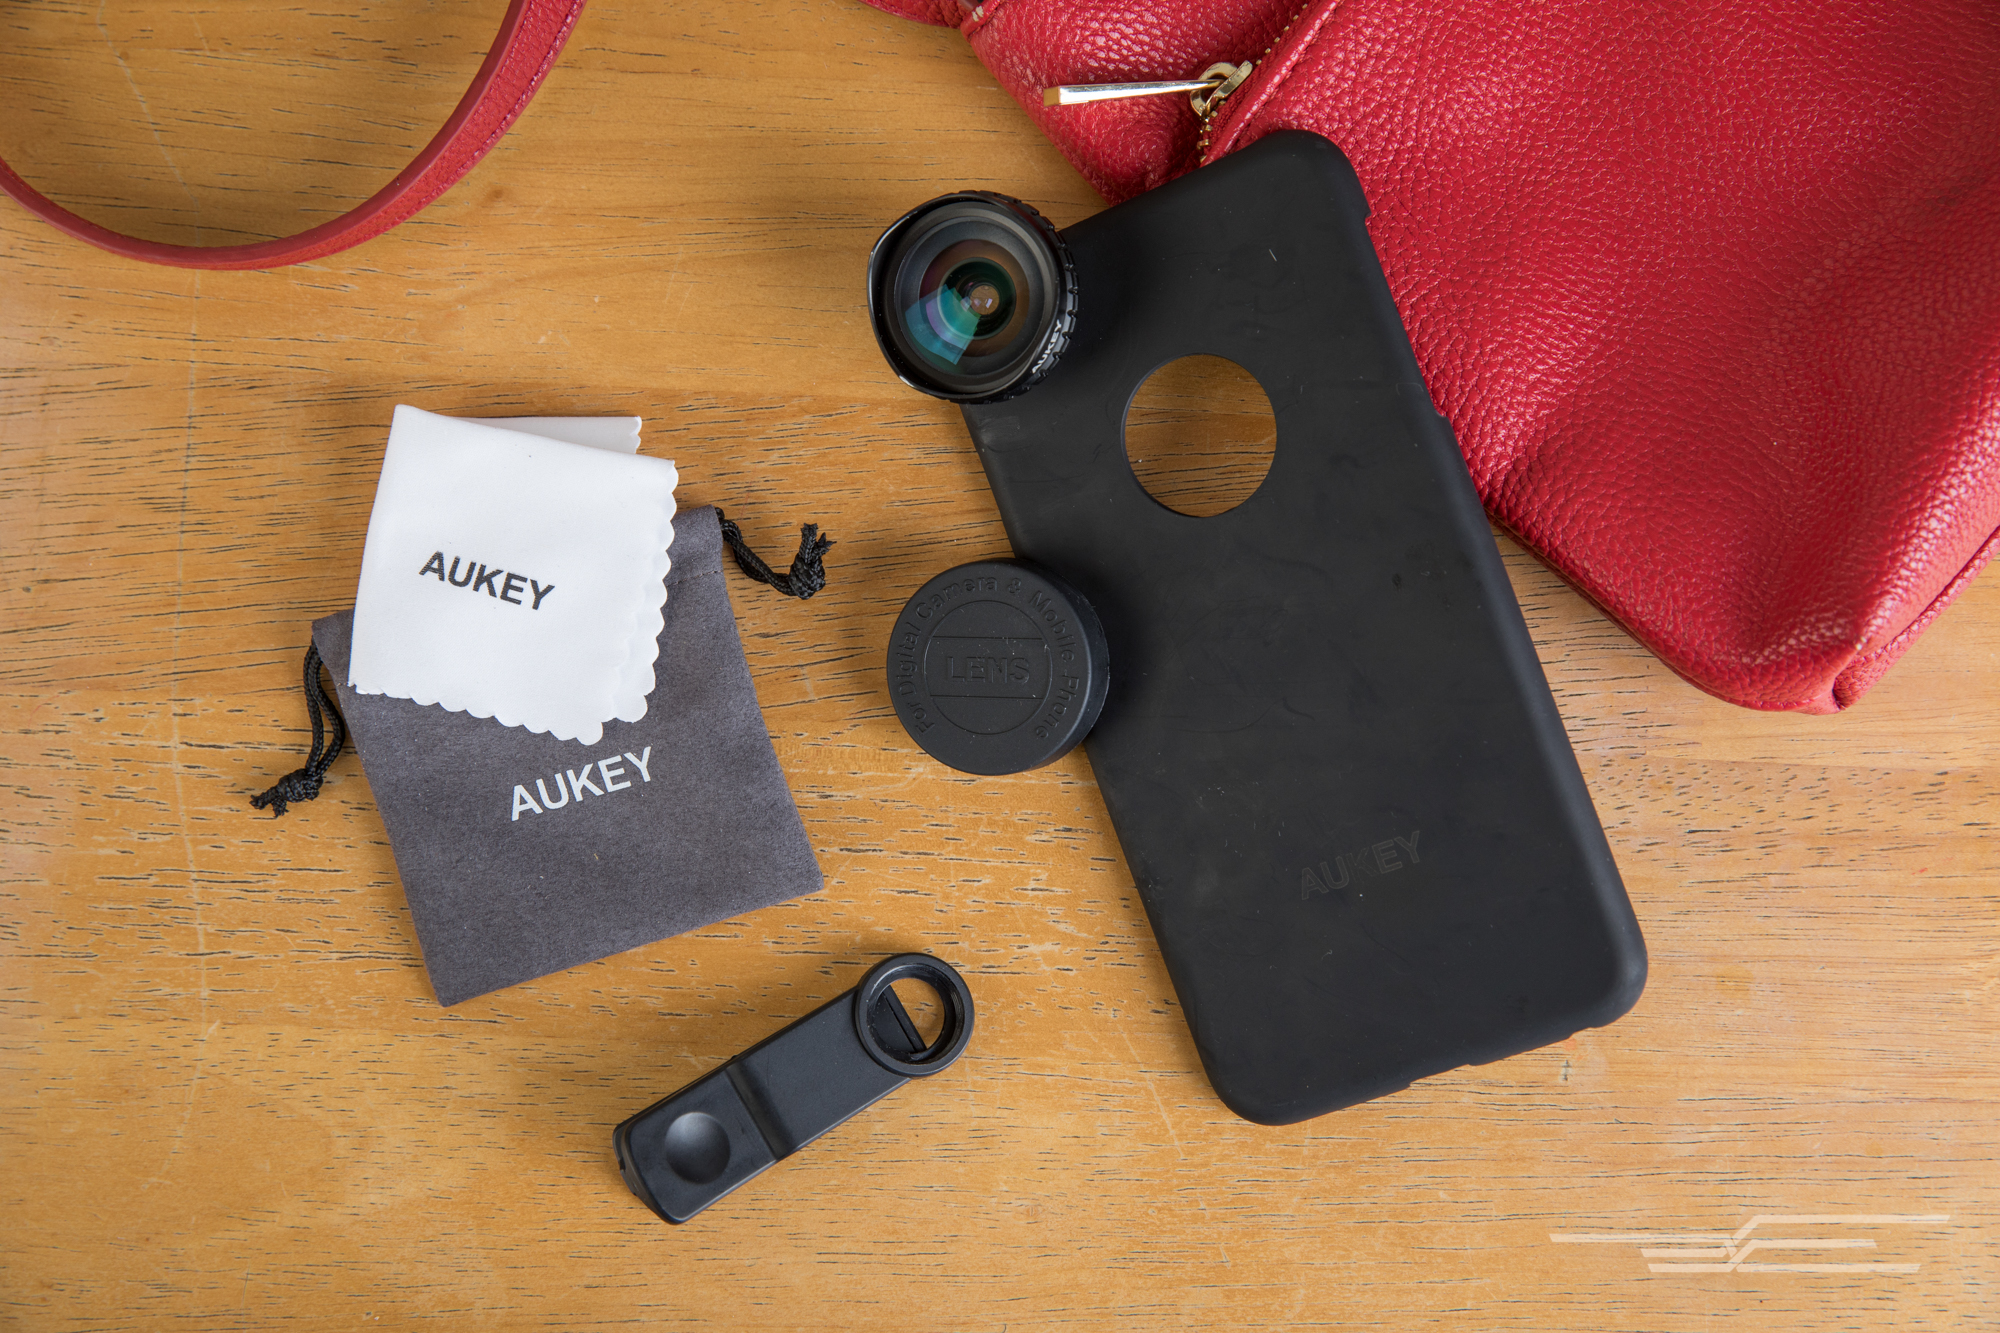 iphone lenses aukey